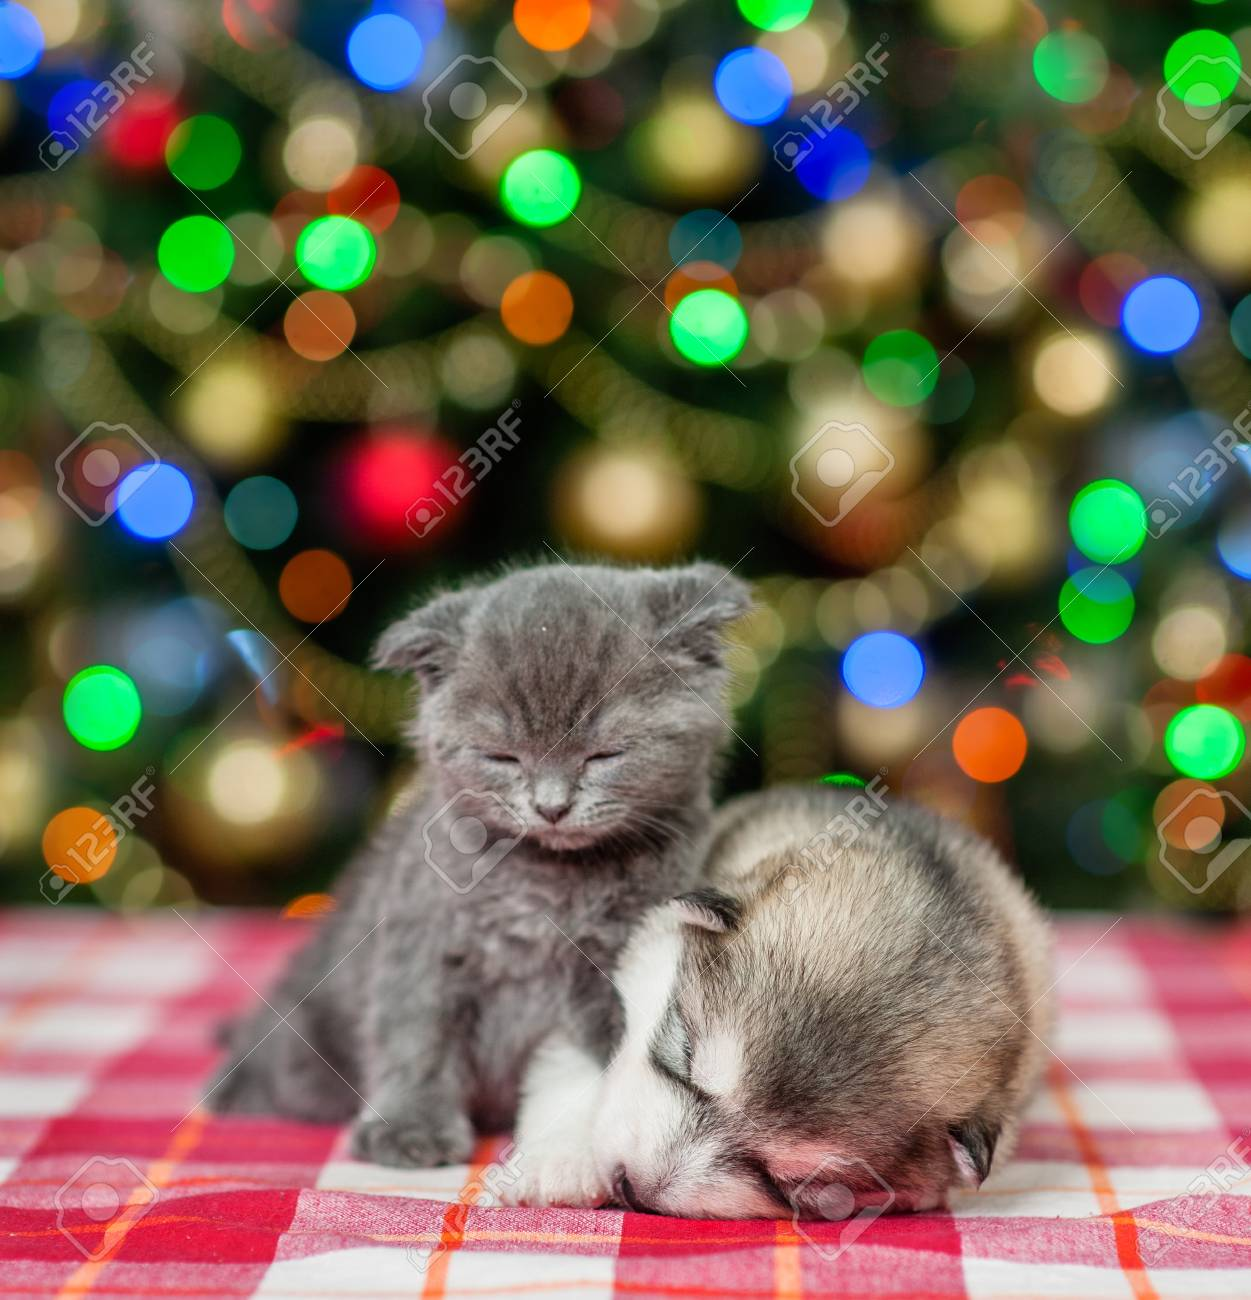 Kitten Christmas.Sleeping Puppy And Kitten On A Background Of The Christmas Tree